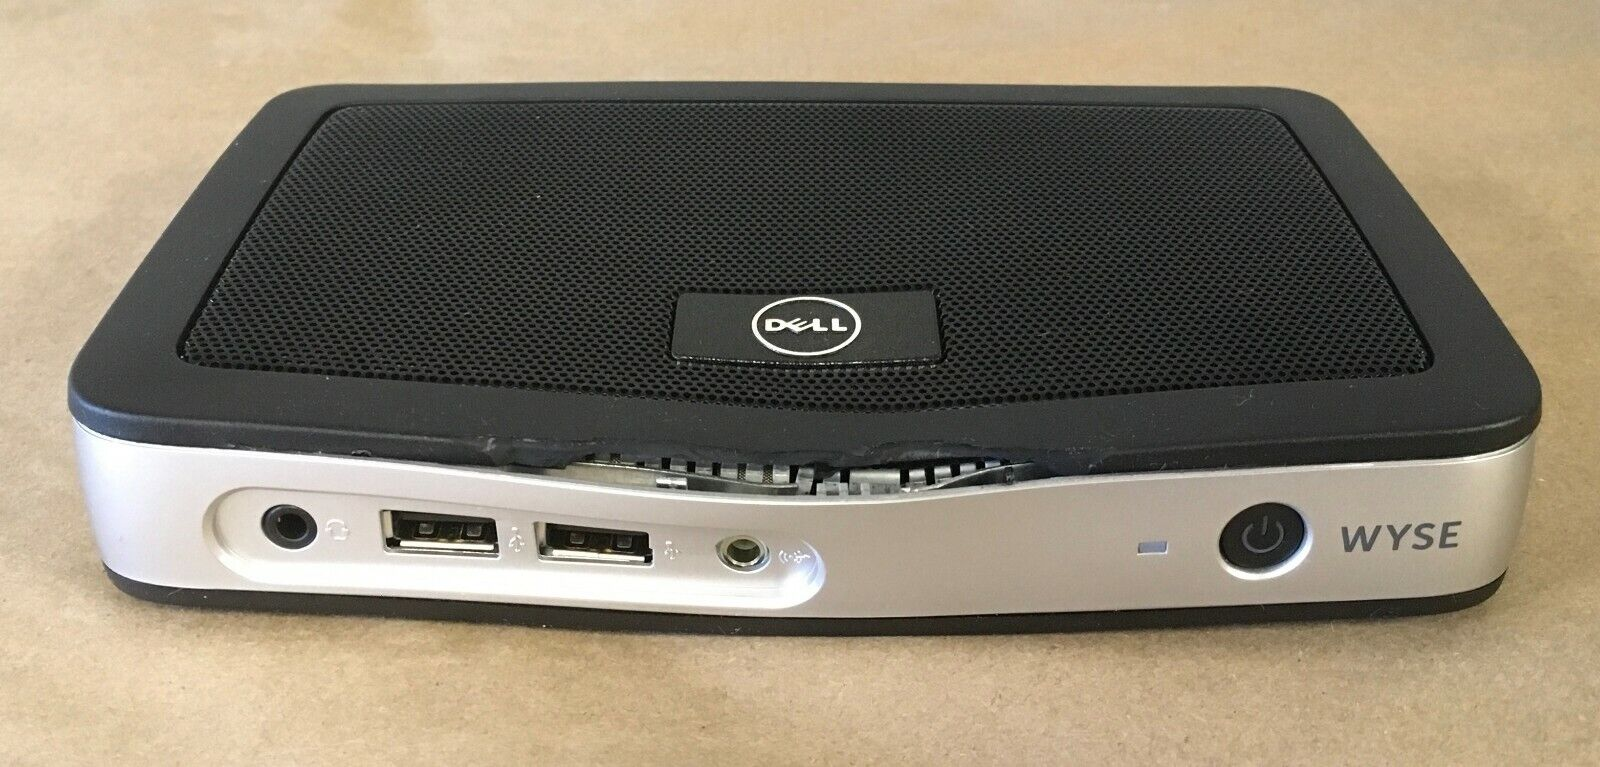 Dell Wyse 4NH9X 5030 Zero Thin Client PCoIP 512mb RAM 32mb Flash